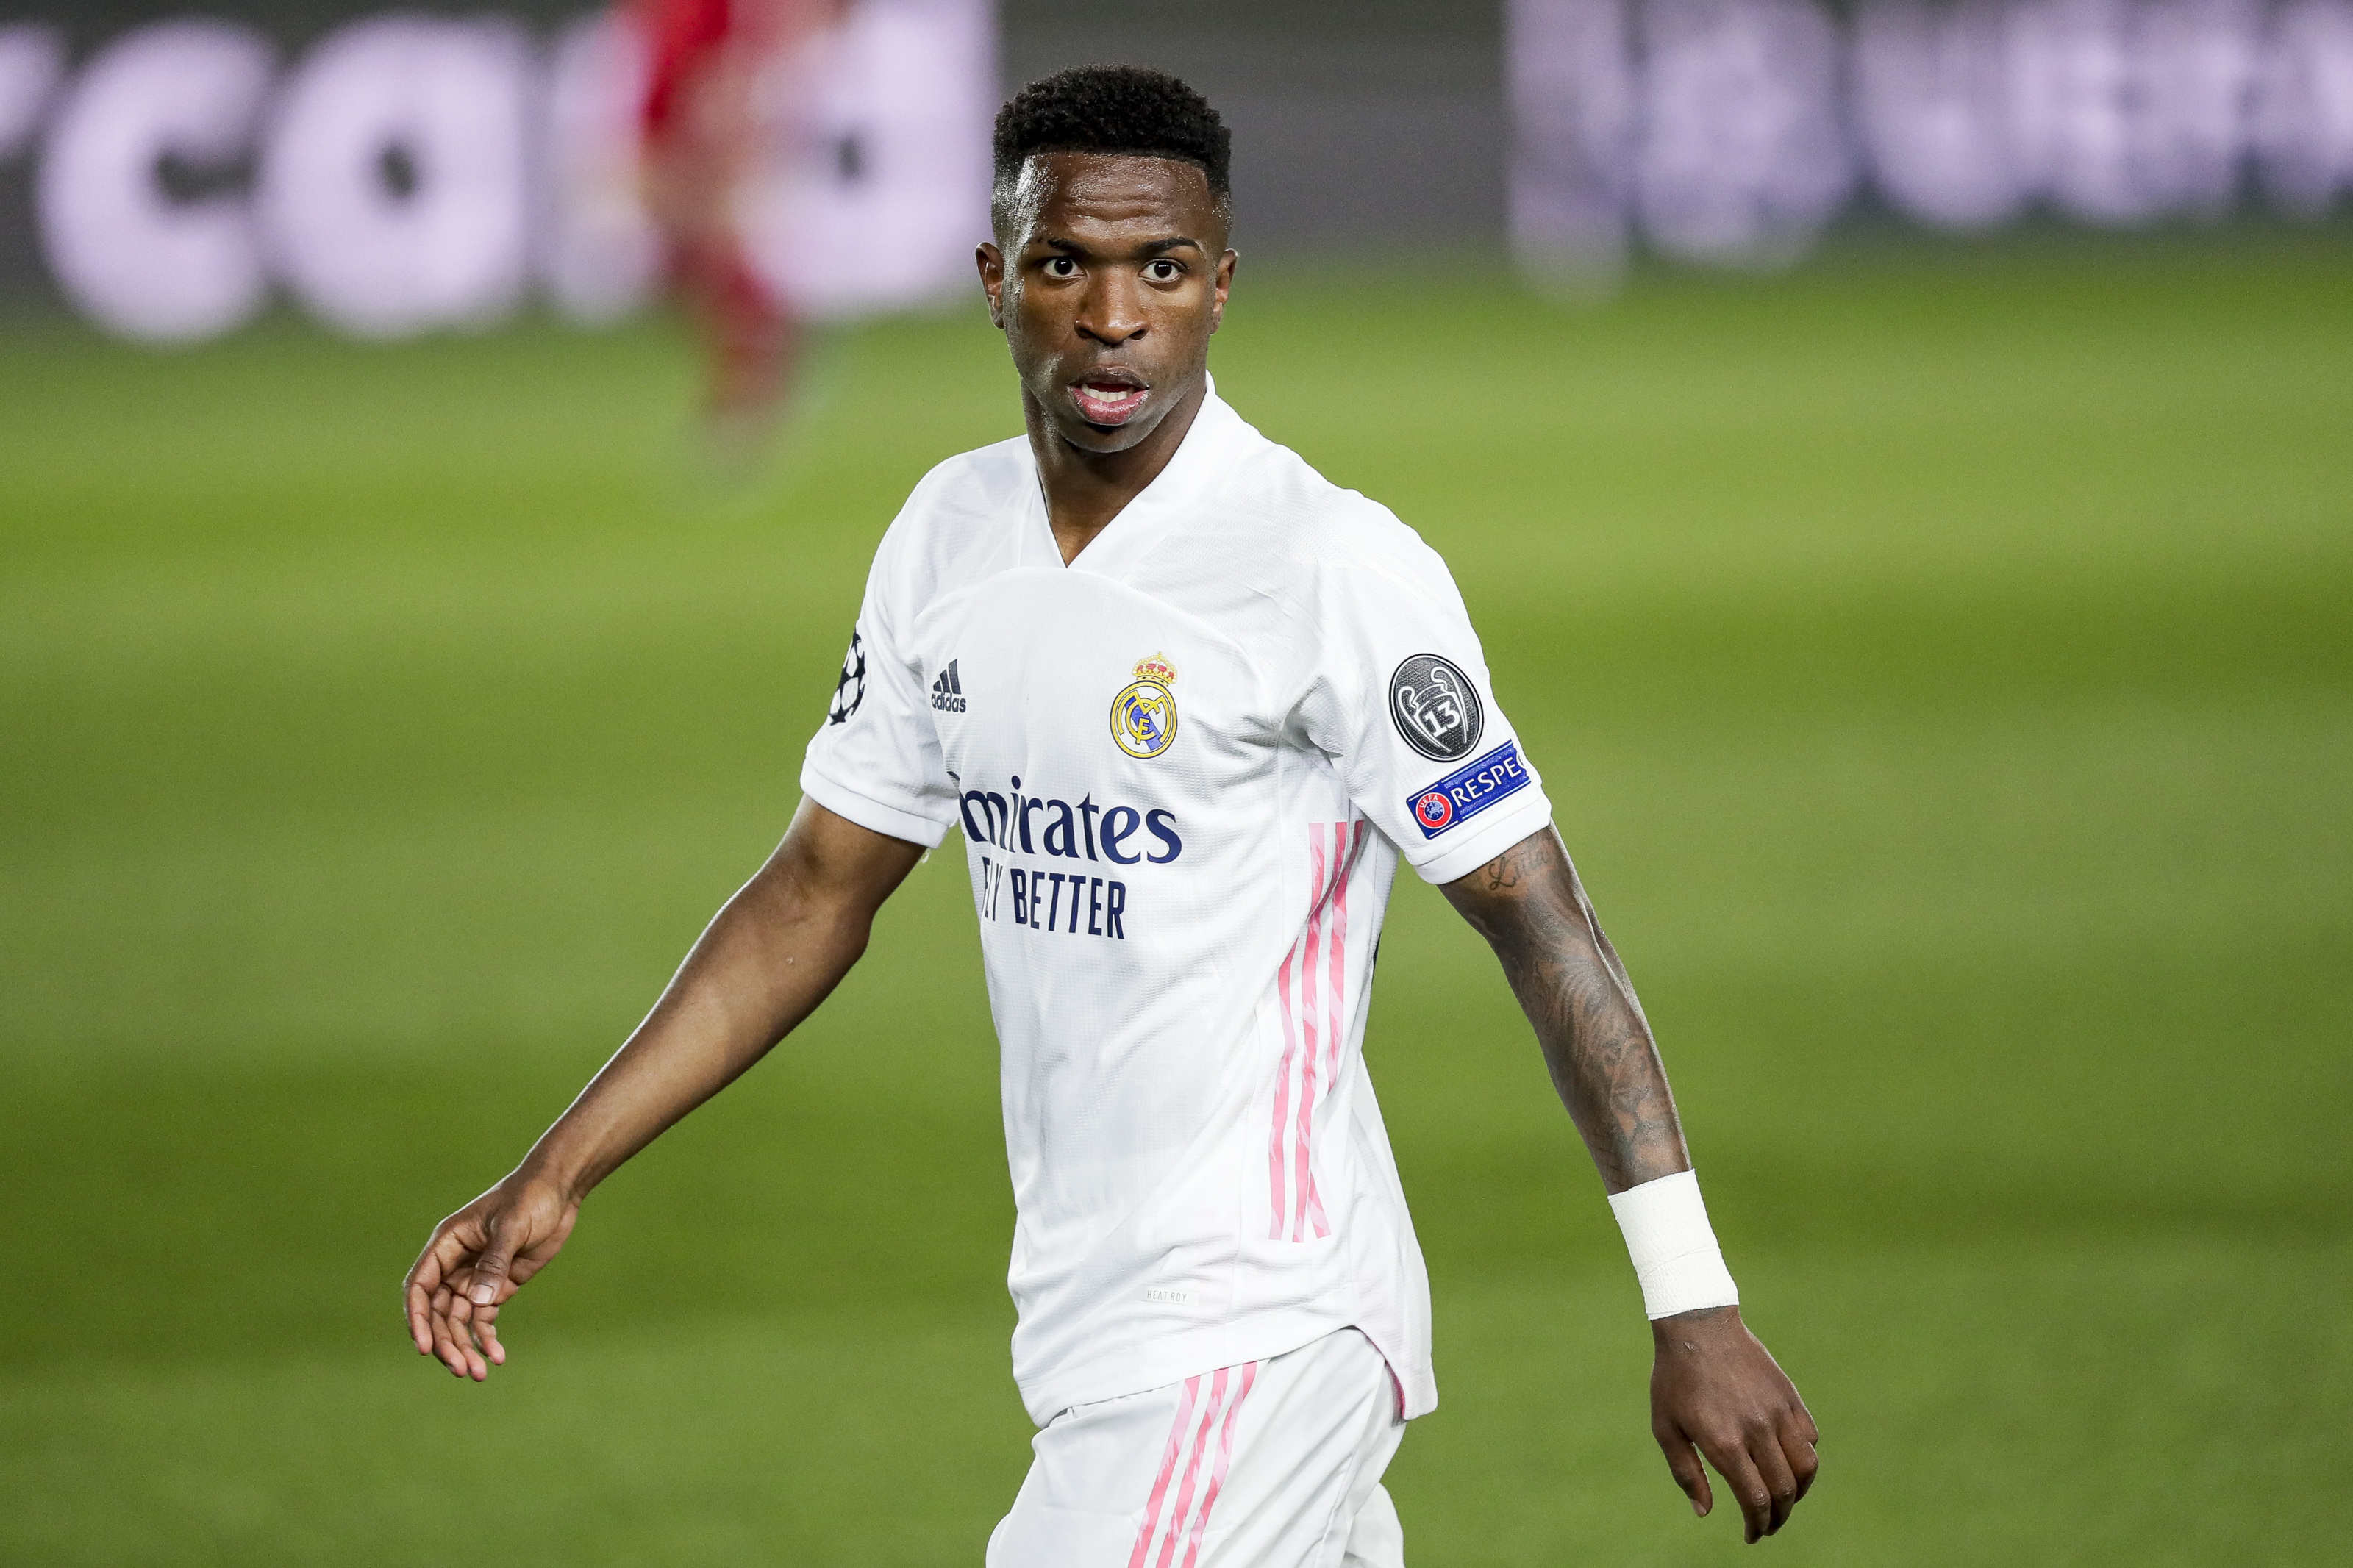 Manchester United transfer news: Red Devils offered chance to sign Vinicius Jr